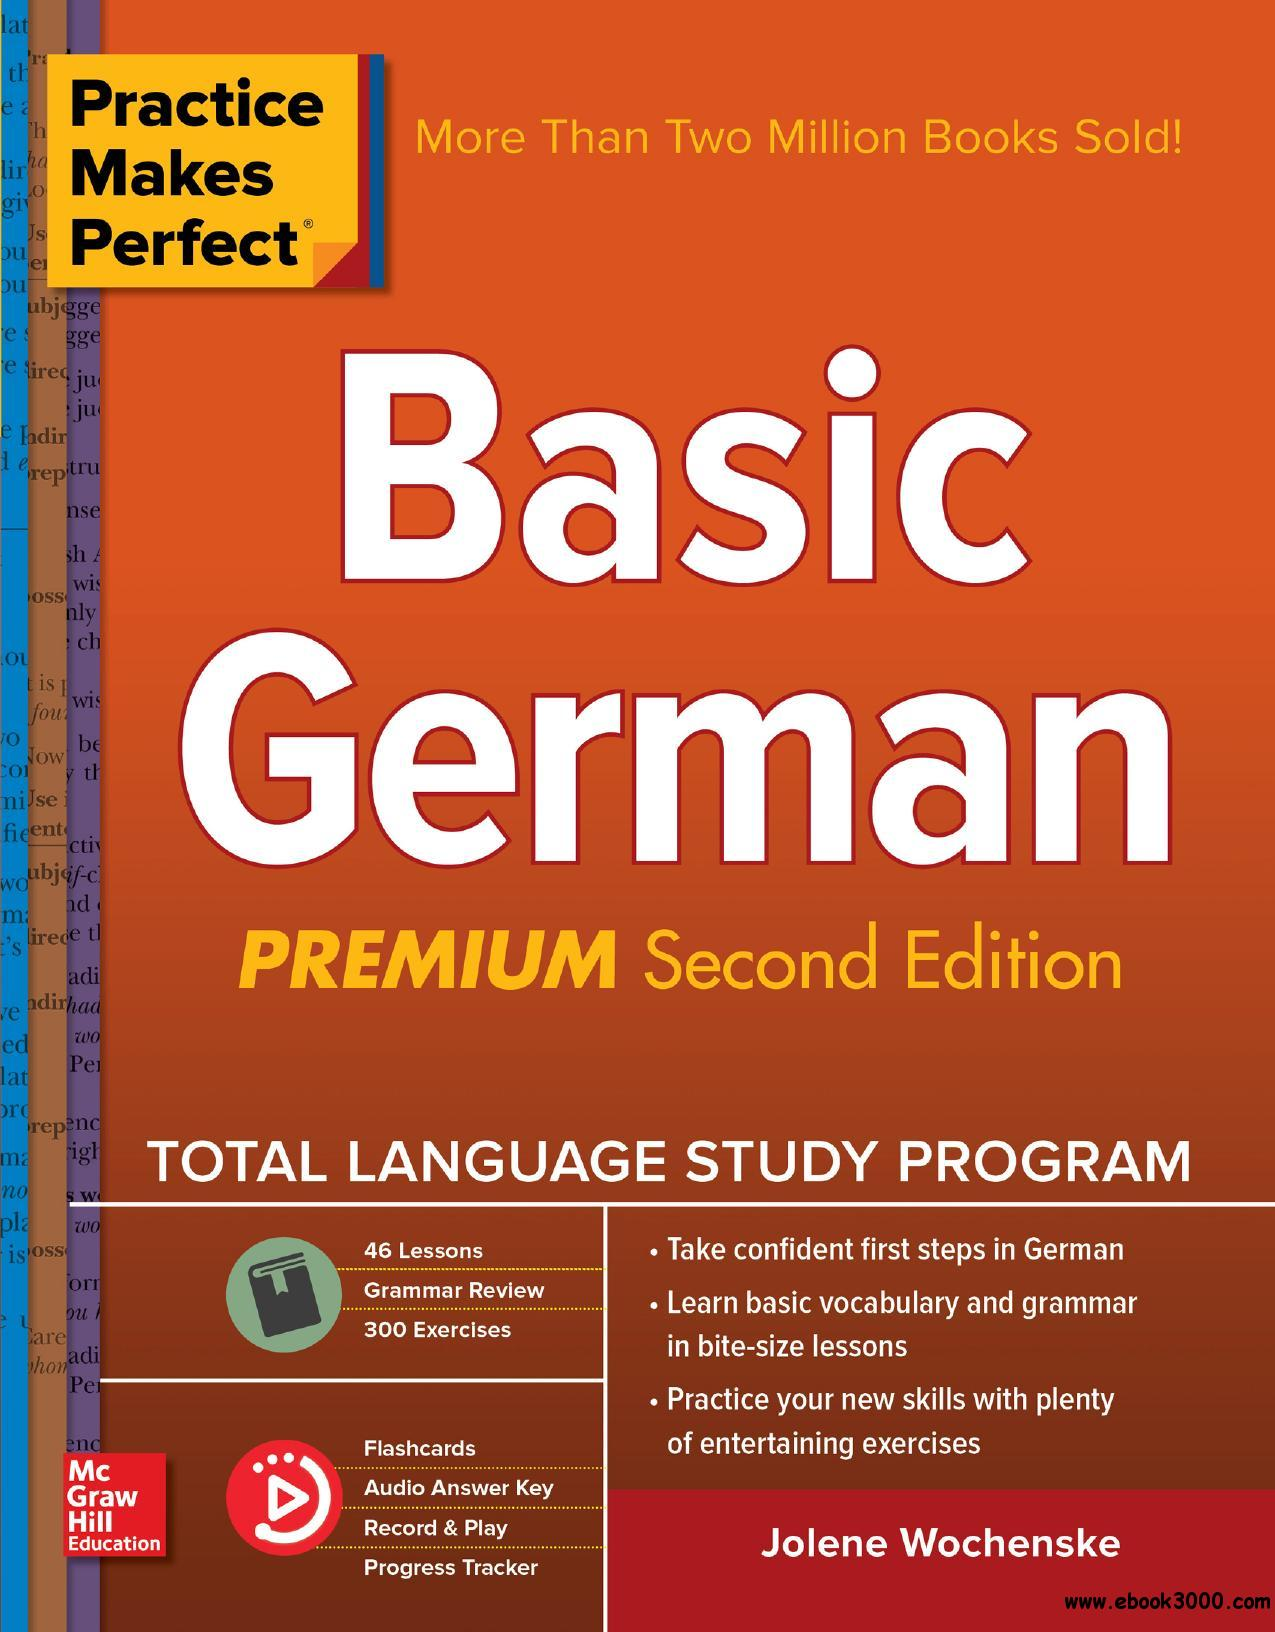 Practice Makes Perfect: Basic German, 2nd Edition